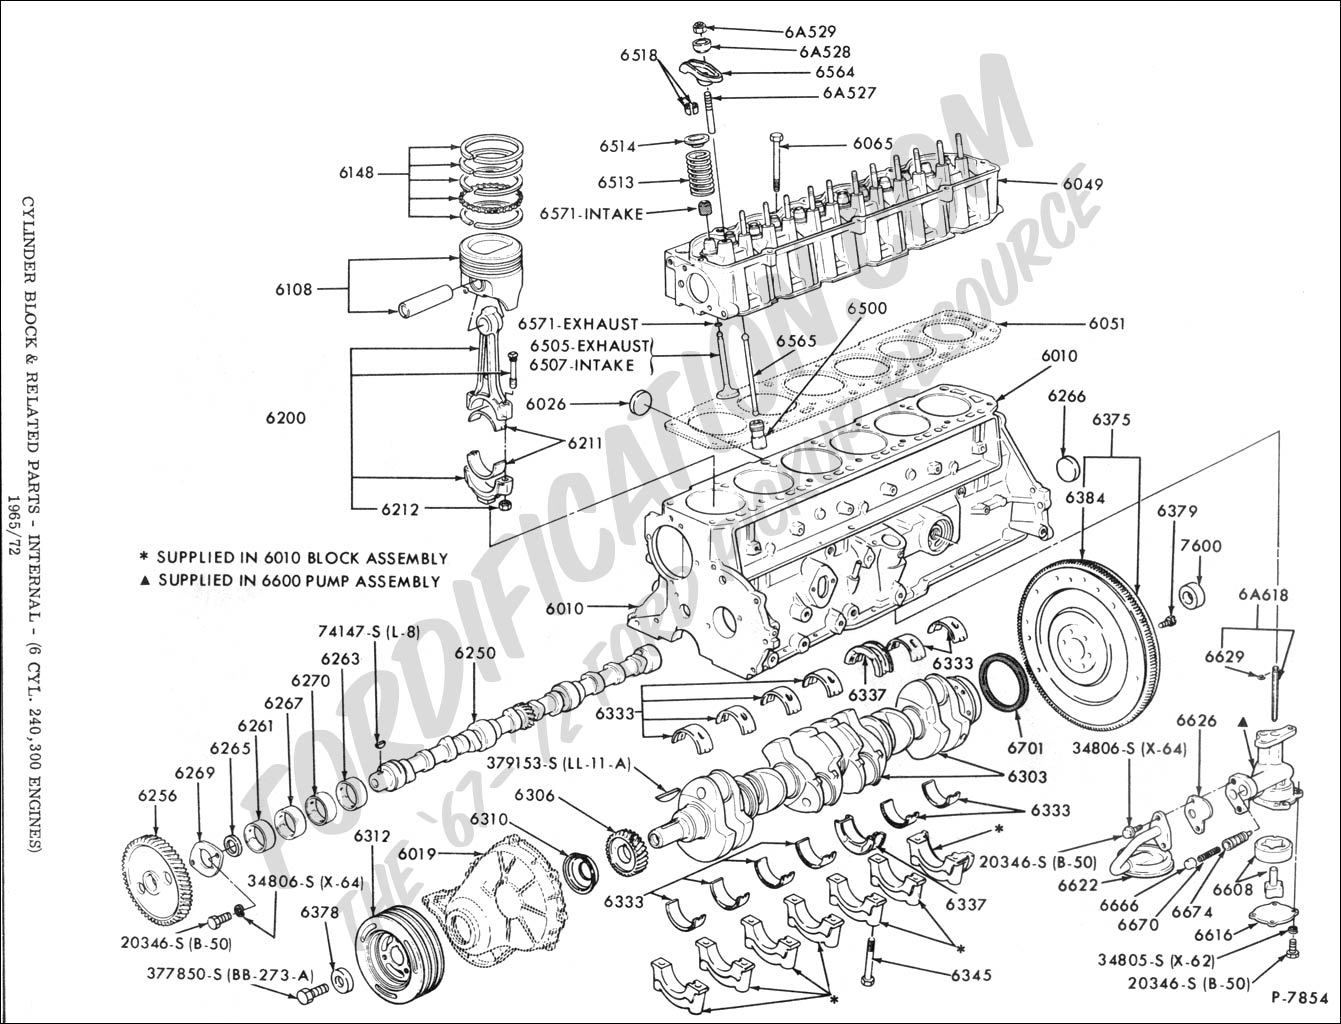 caterpillar engine parts diagrams with Schematics E on Engine Diagram Fuel Filter Car Parts And Ponent further I01146977 besides Cat C9 Huei Fuel System likewise Schematics e besides SEBP15760077.